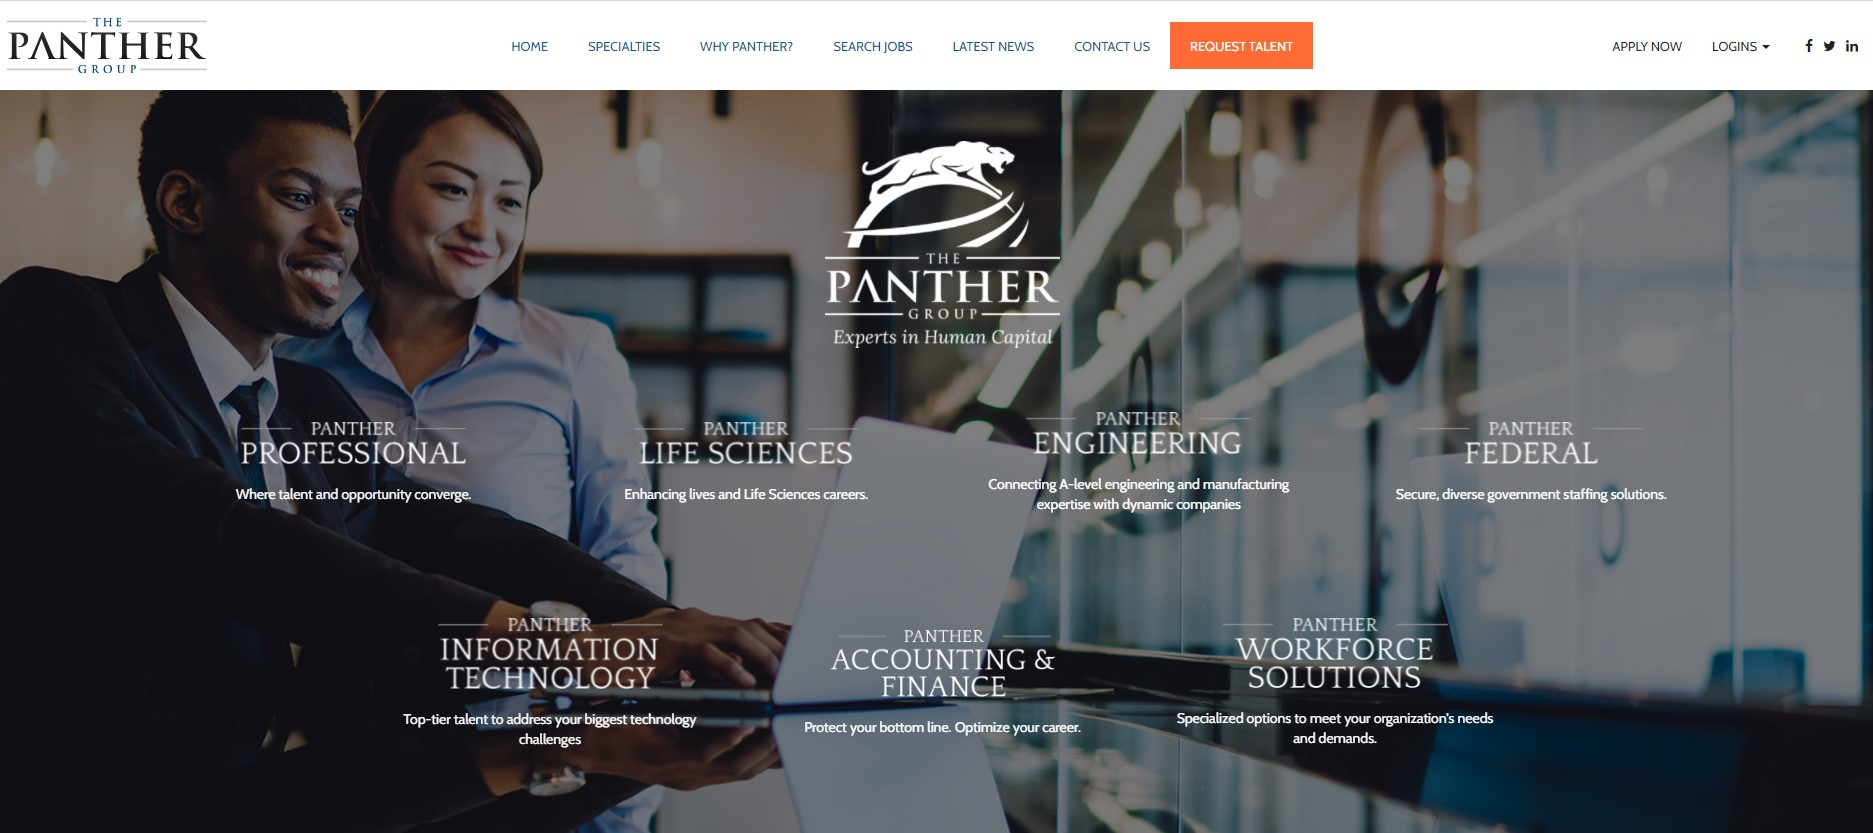 The Panther Group - Best Engineering Staffing Agency